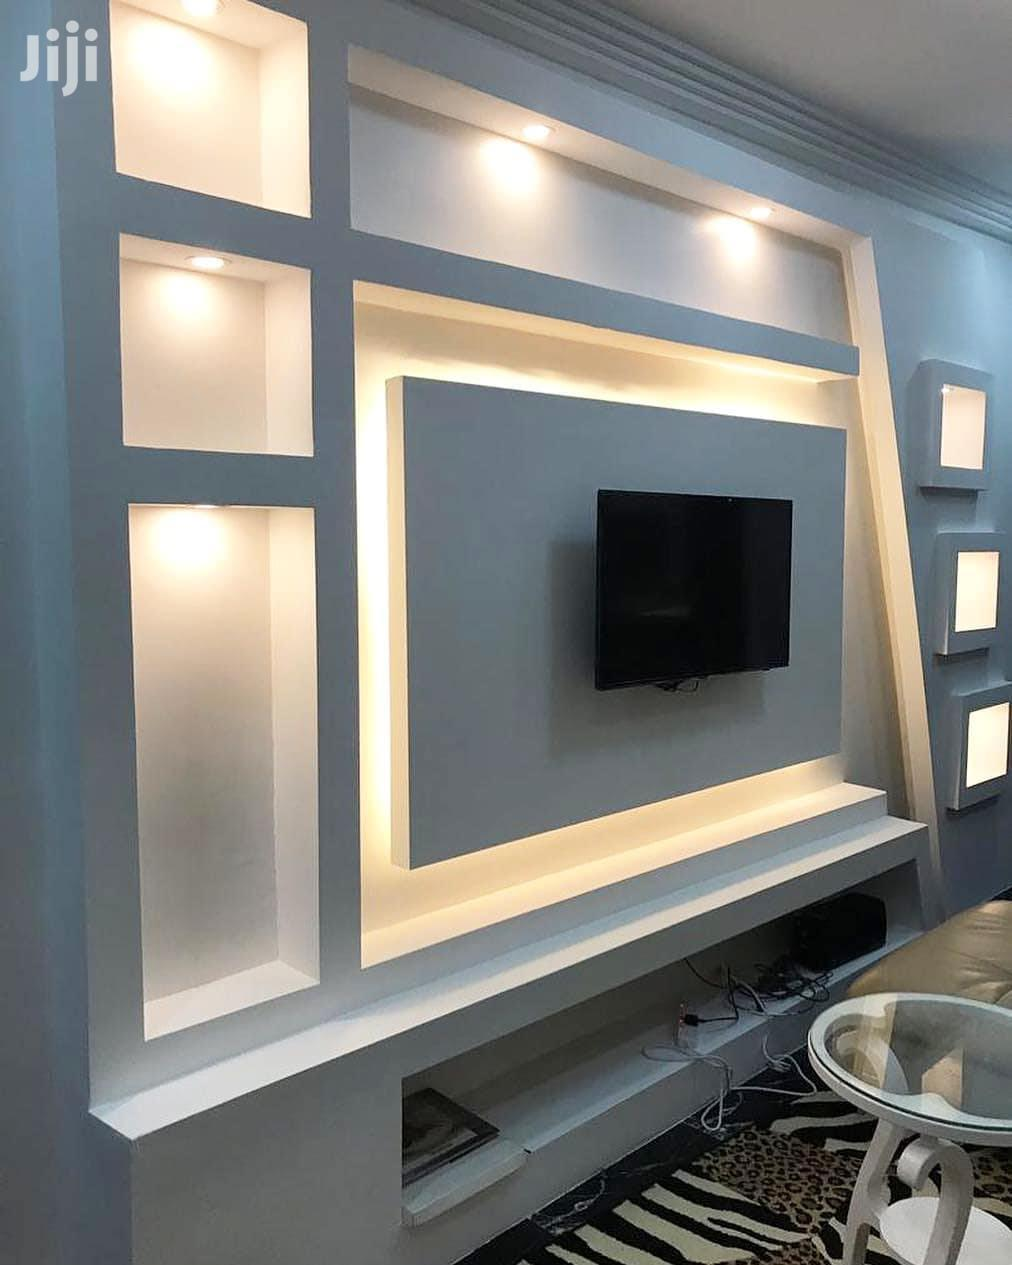 Gypsum Tv Niches | Building & Trades Services for sale in Kisauni, Mombasa, Kenya